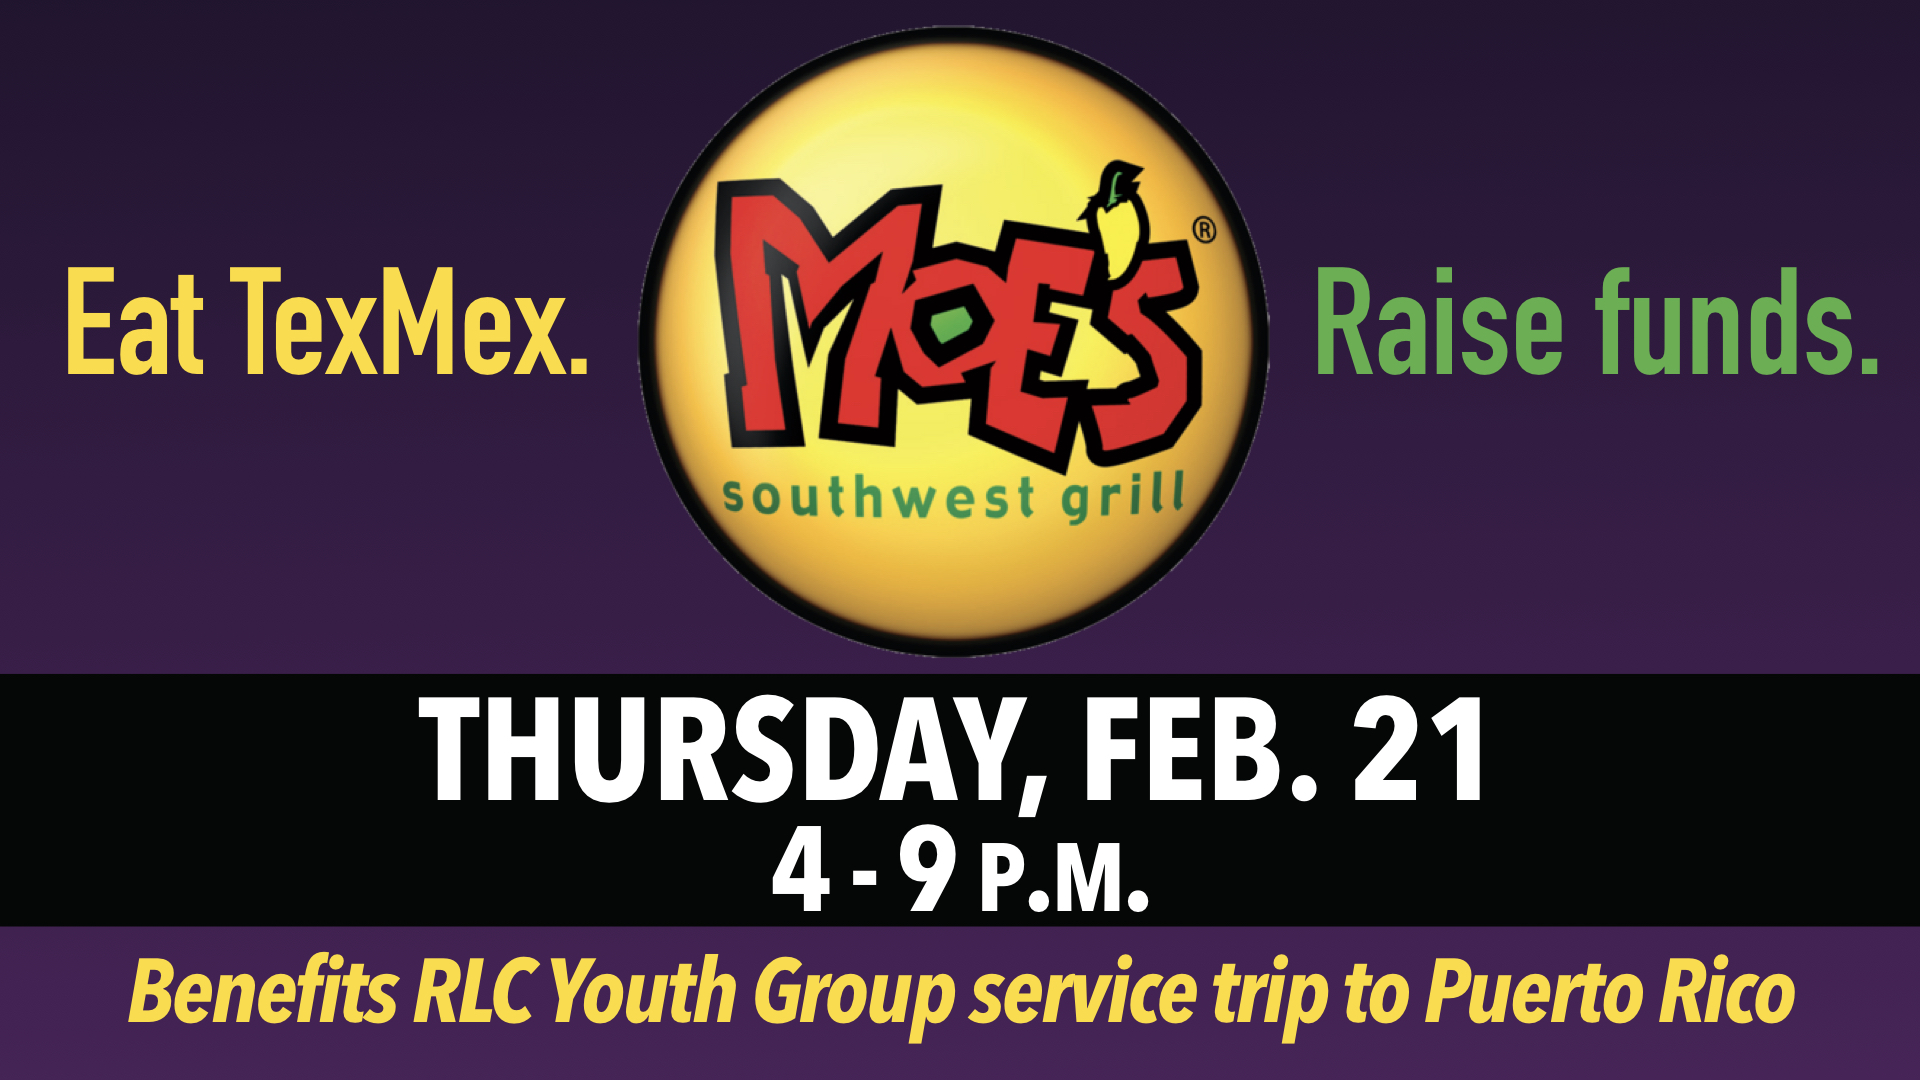 RLC Youth Group Moe's Southwest Grill Fundraiser Feb. 21